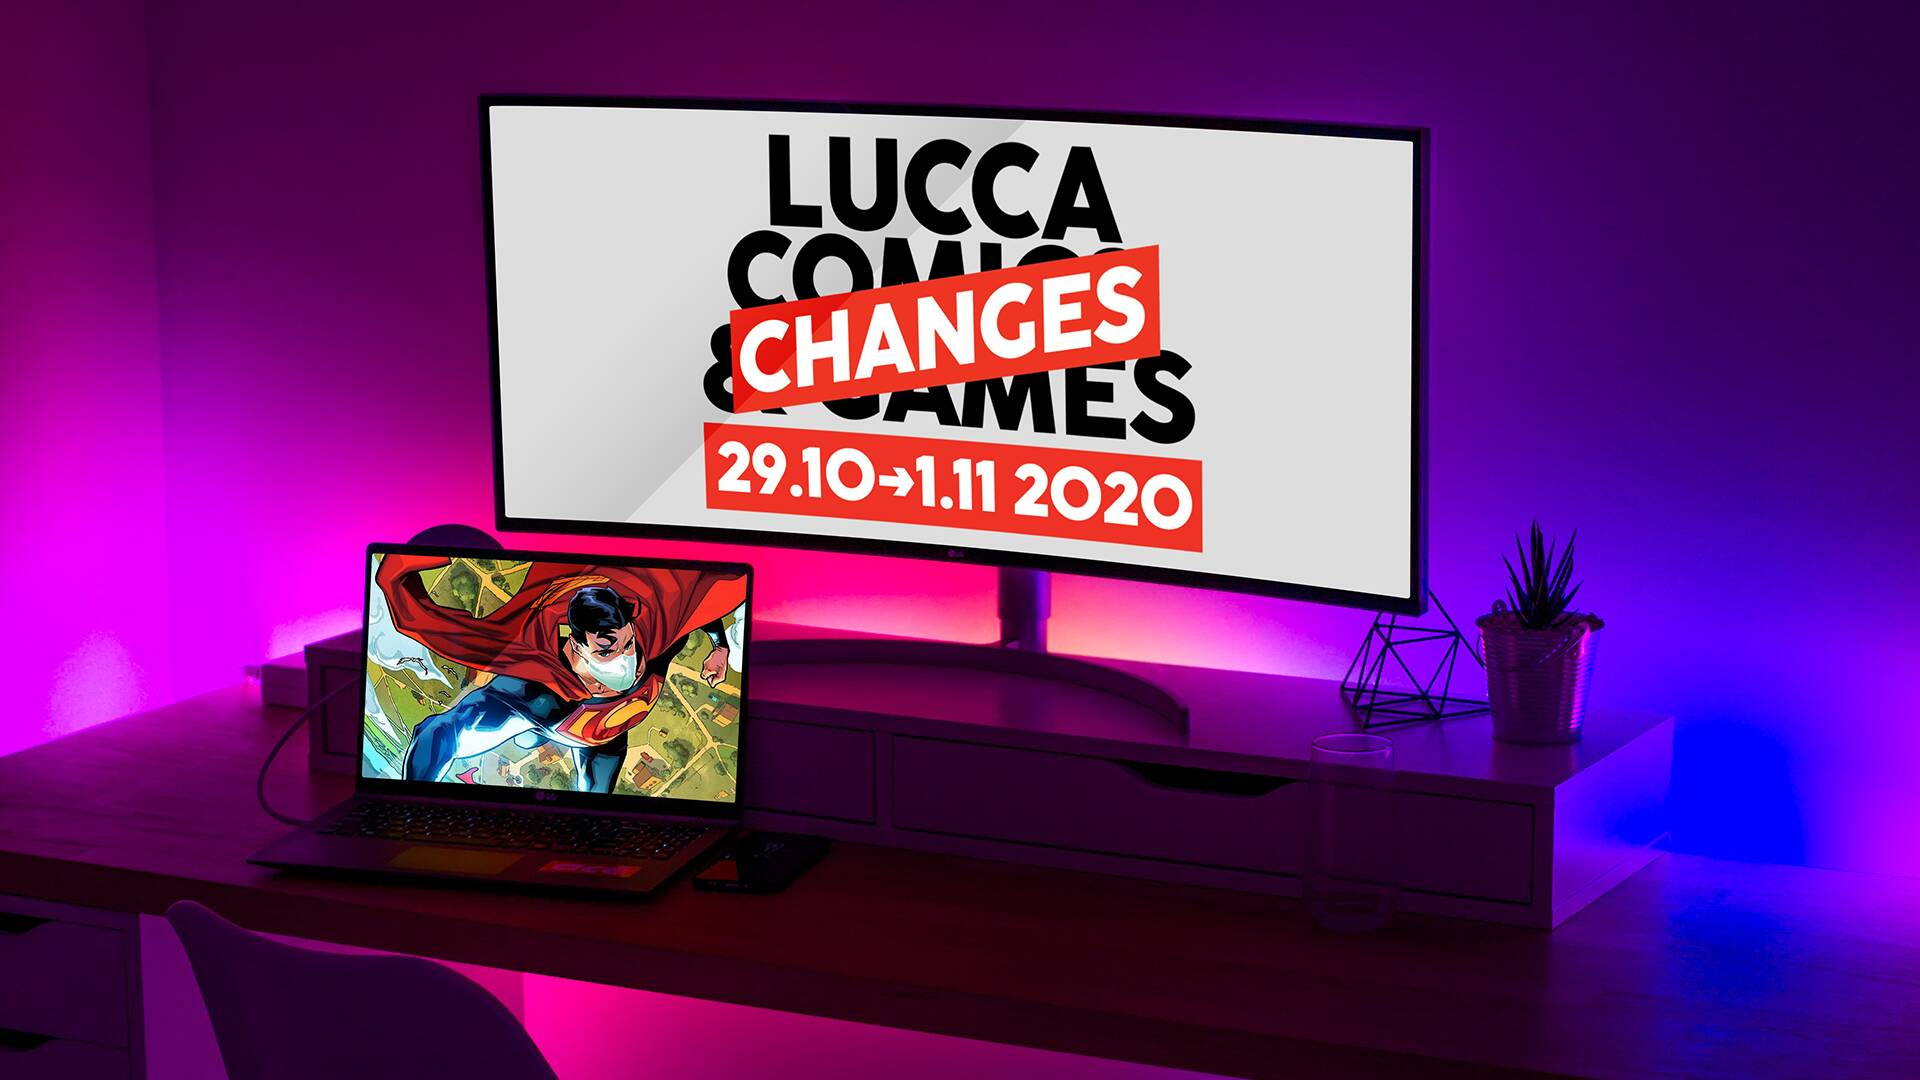 programma online di Lucca ChanGes